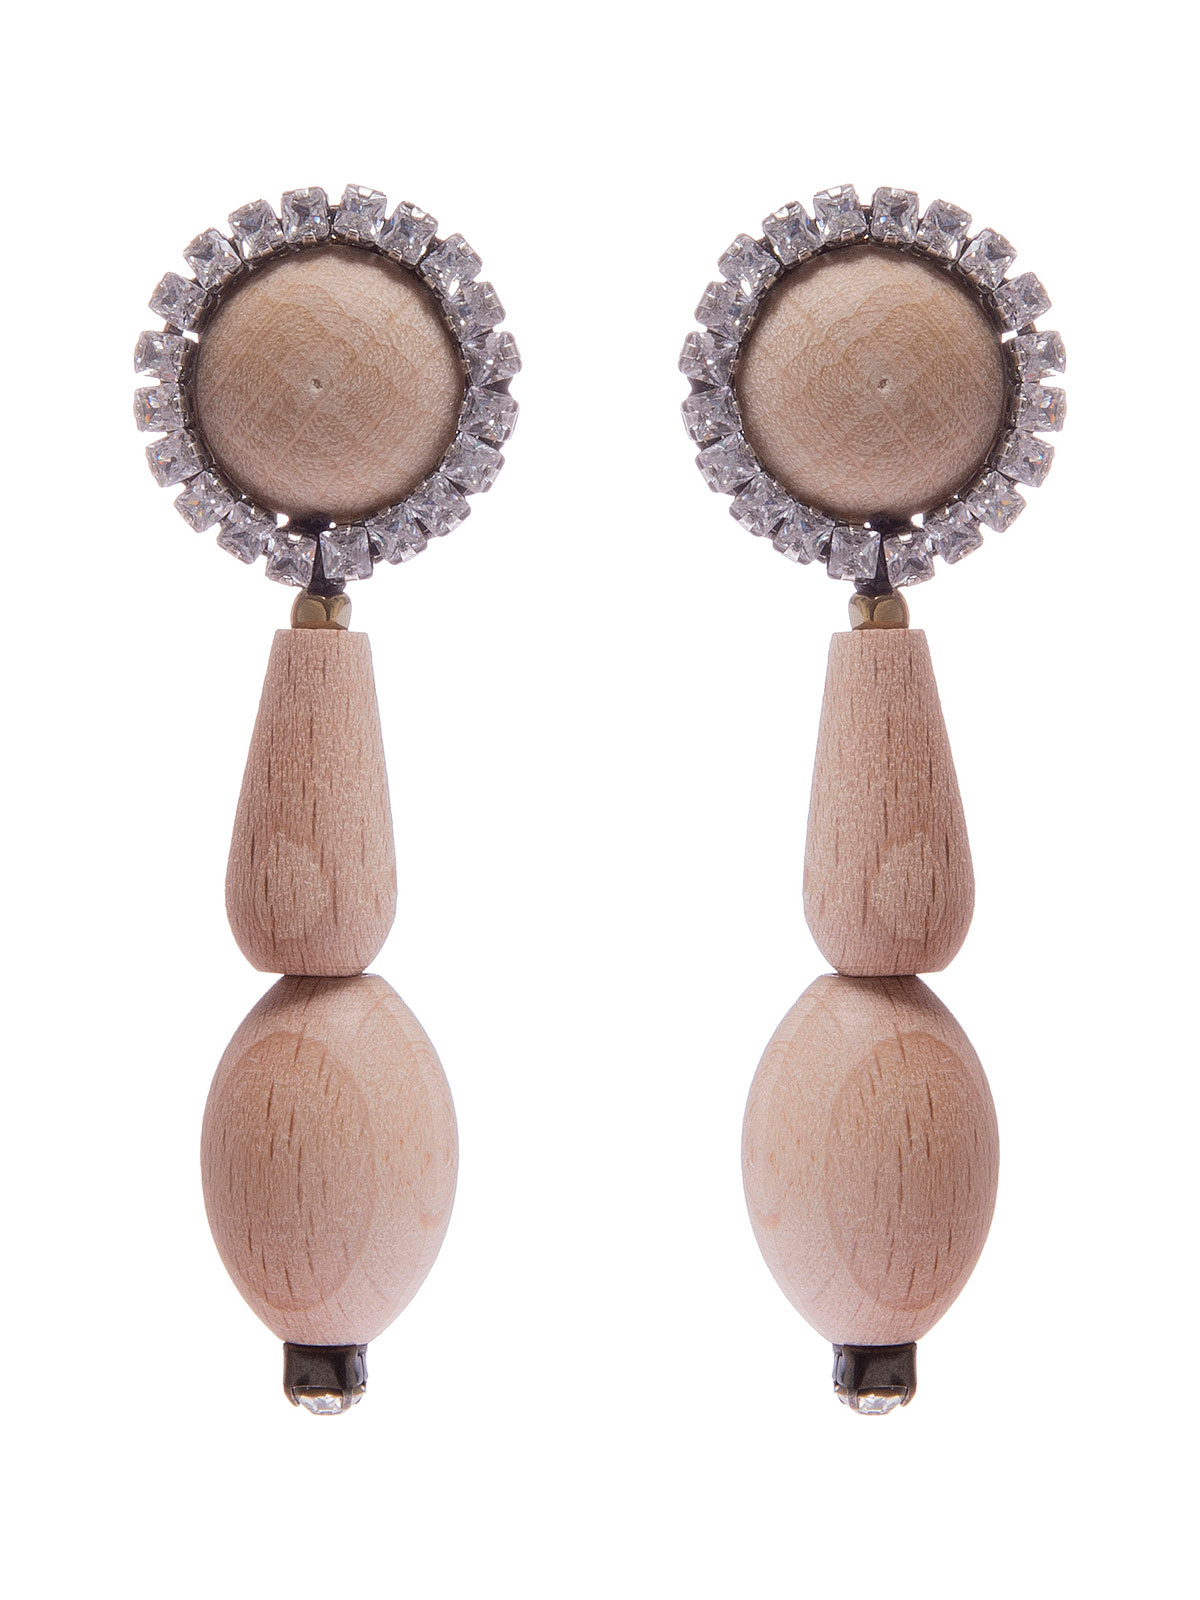 Wood cabochon earrings with wood drops and crystals